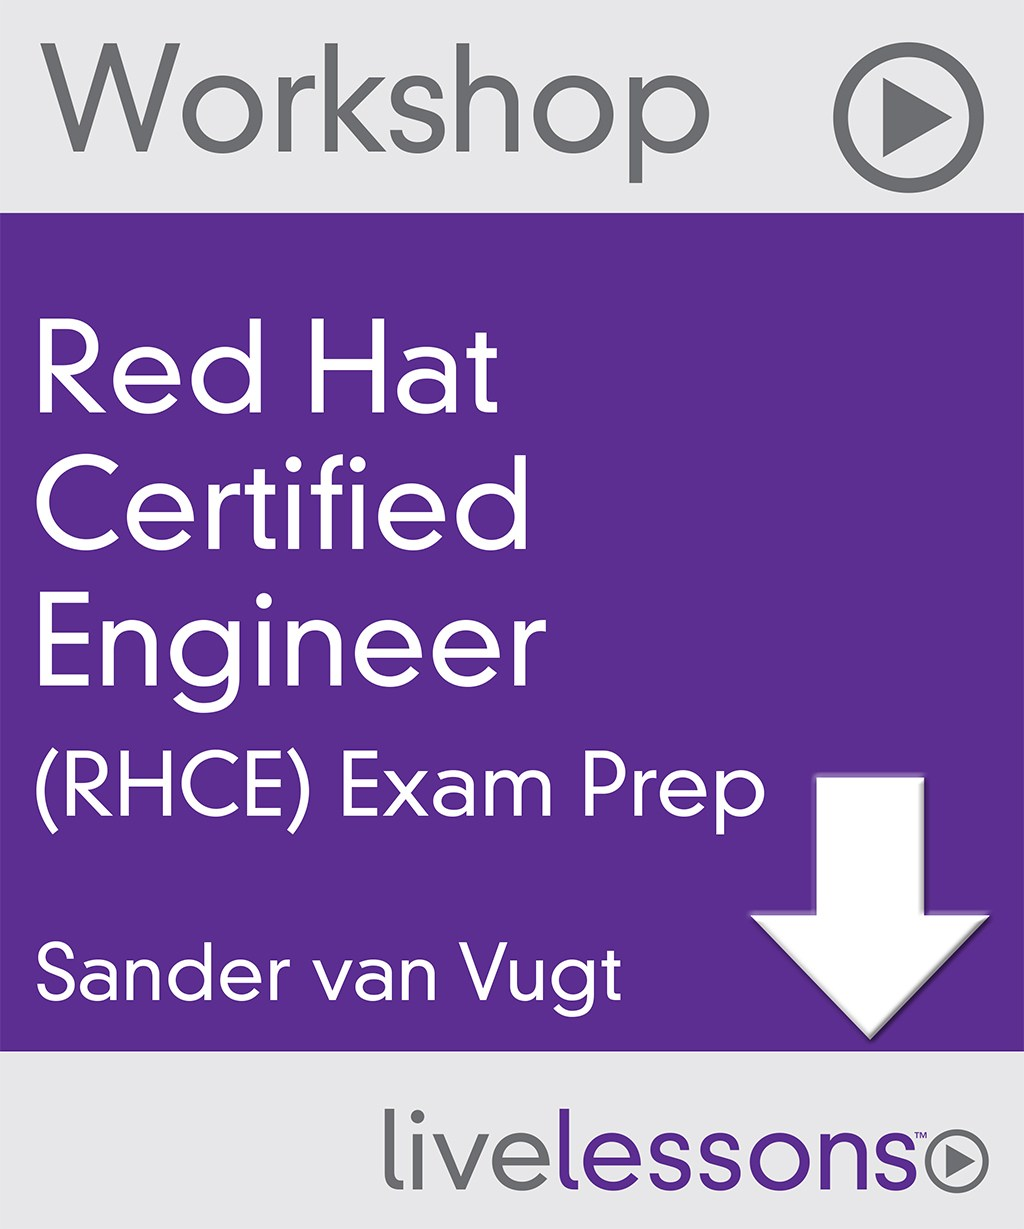 Red Hat Certified Engineer (RHCE) Exam Prep Video Workshop, Downloadable Version